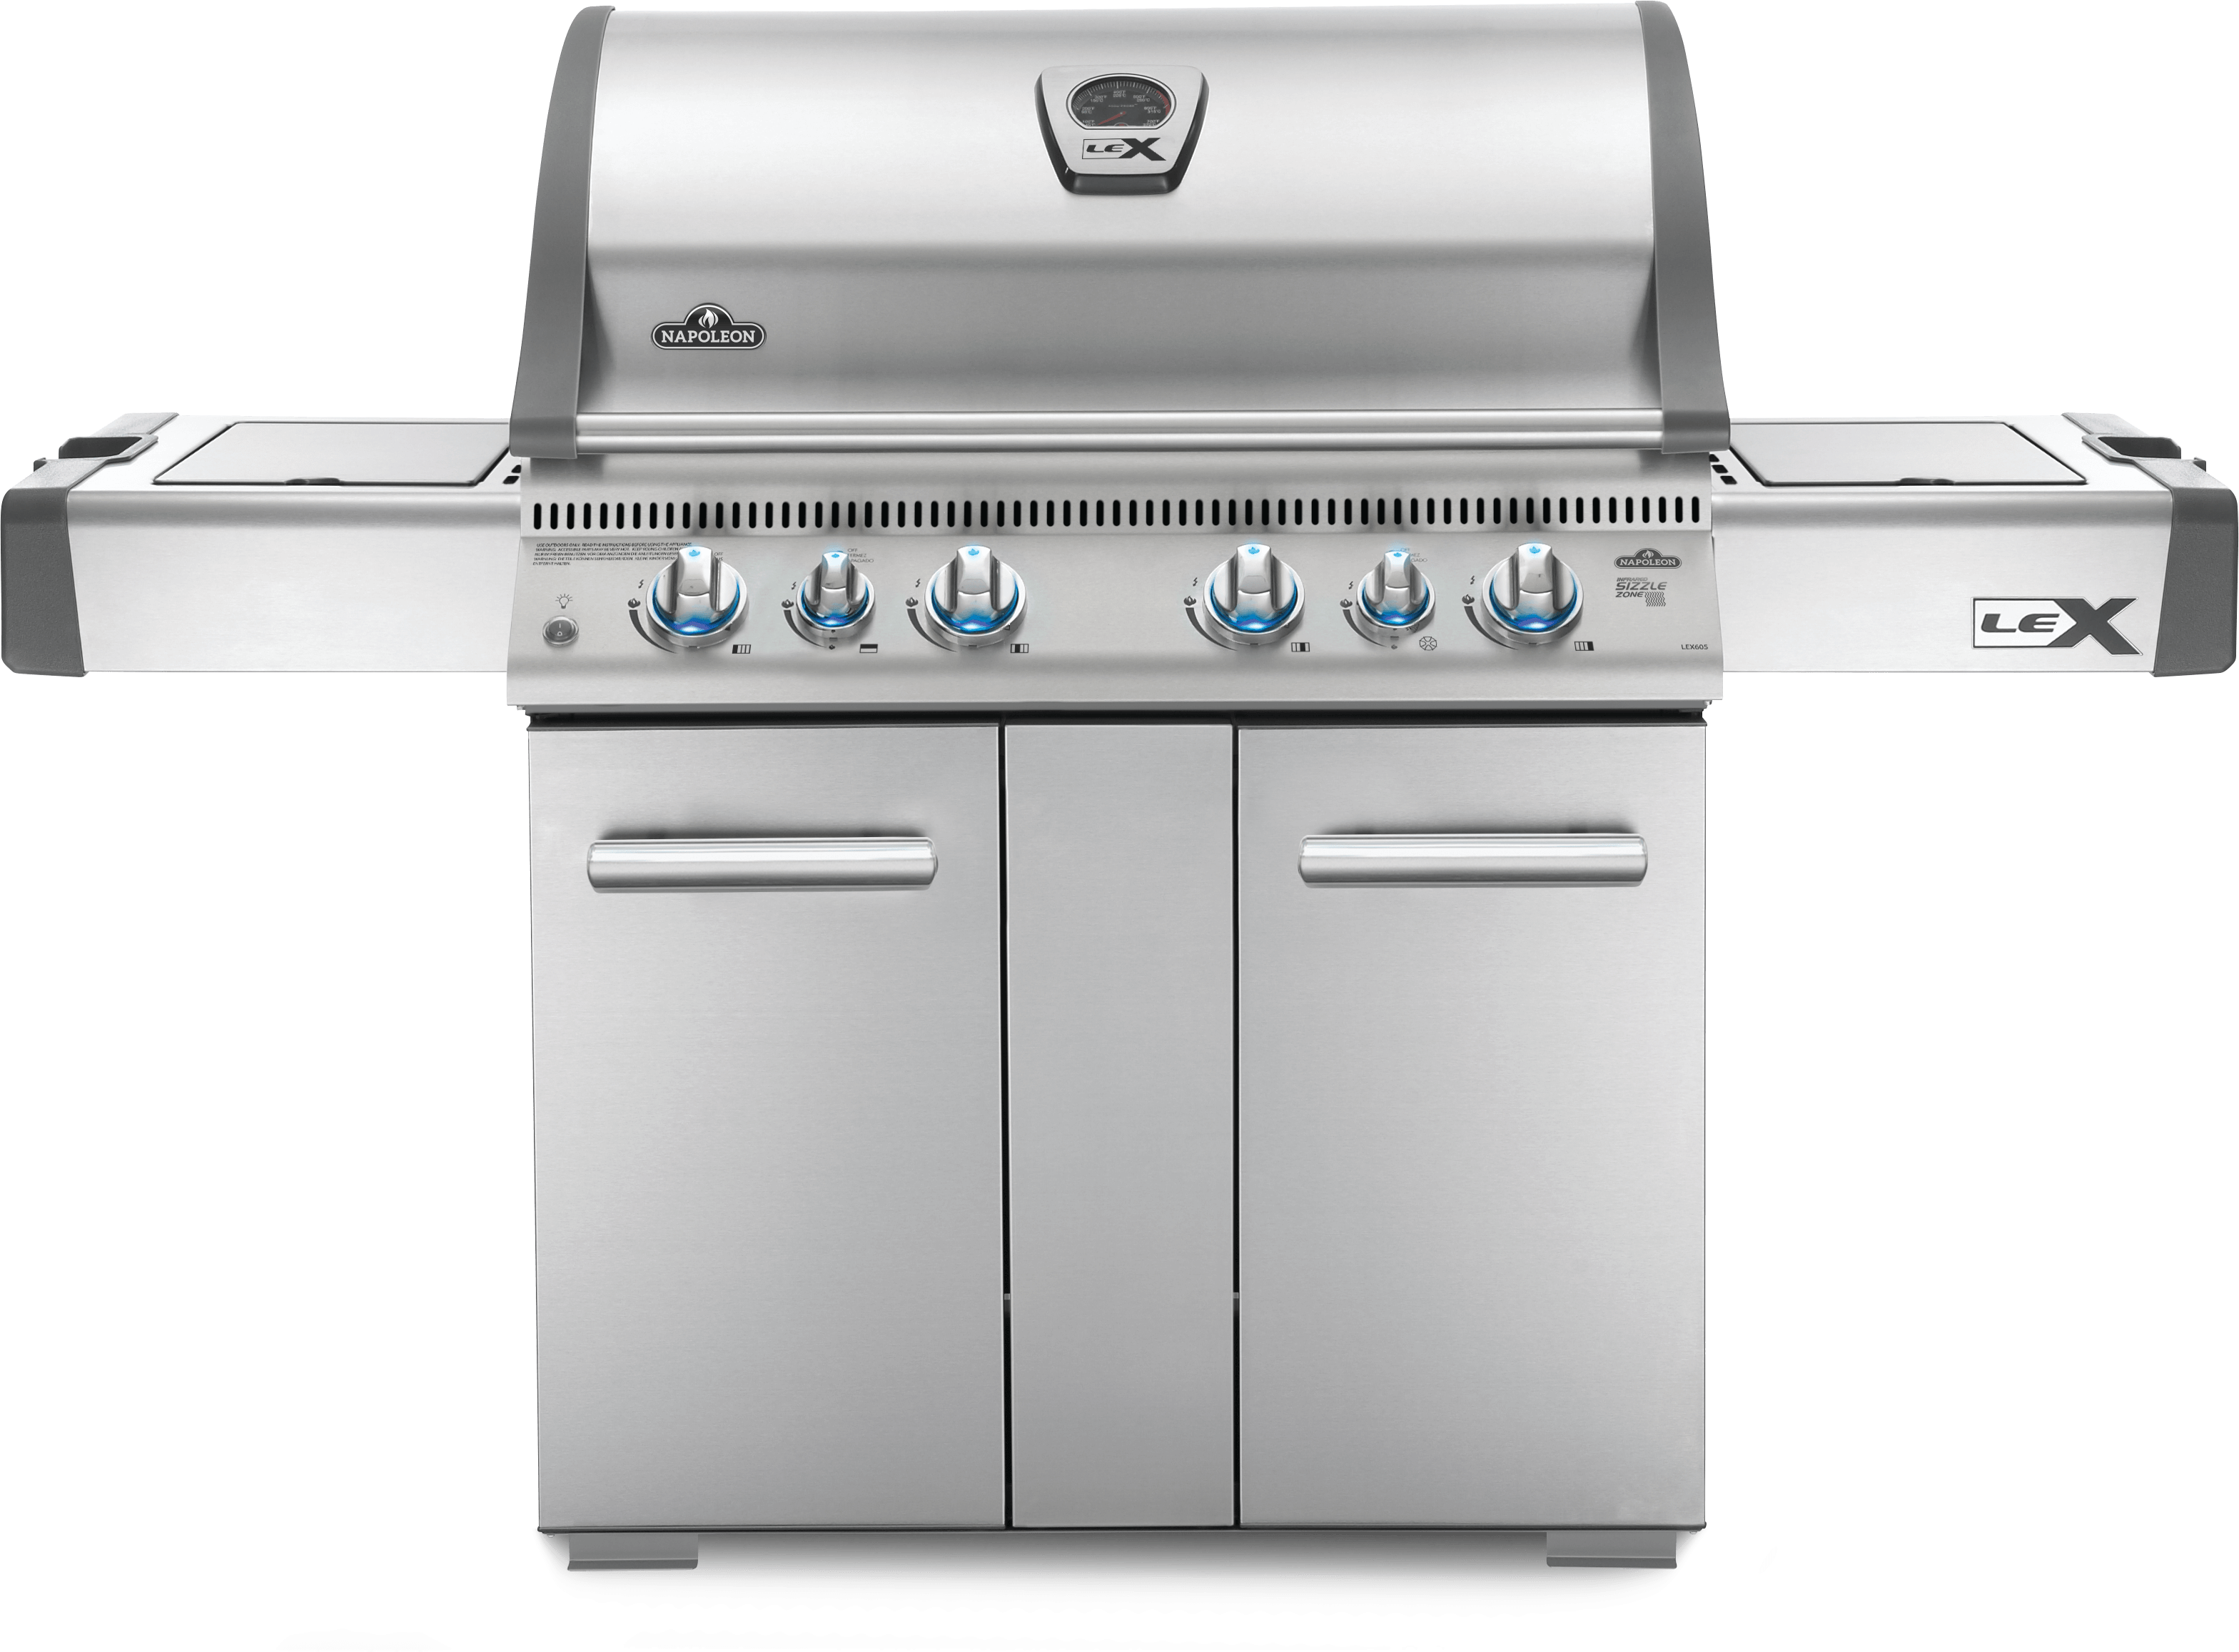 Model: LEX605RSBIPSS | Napoleon LEX 605 Propane Gas Grill with Side Burner and Infrared Bottom & Rear Burners, Stainless Steel